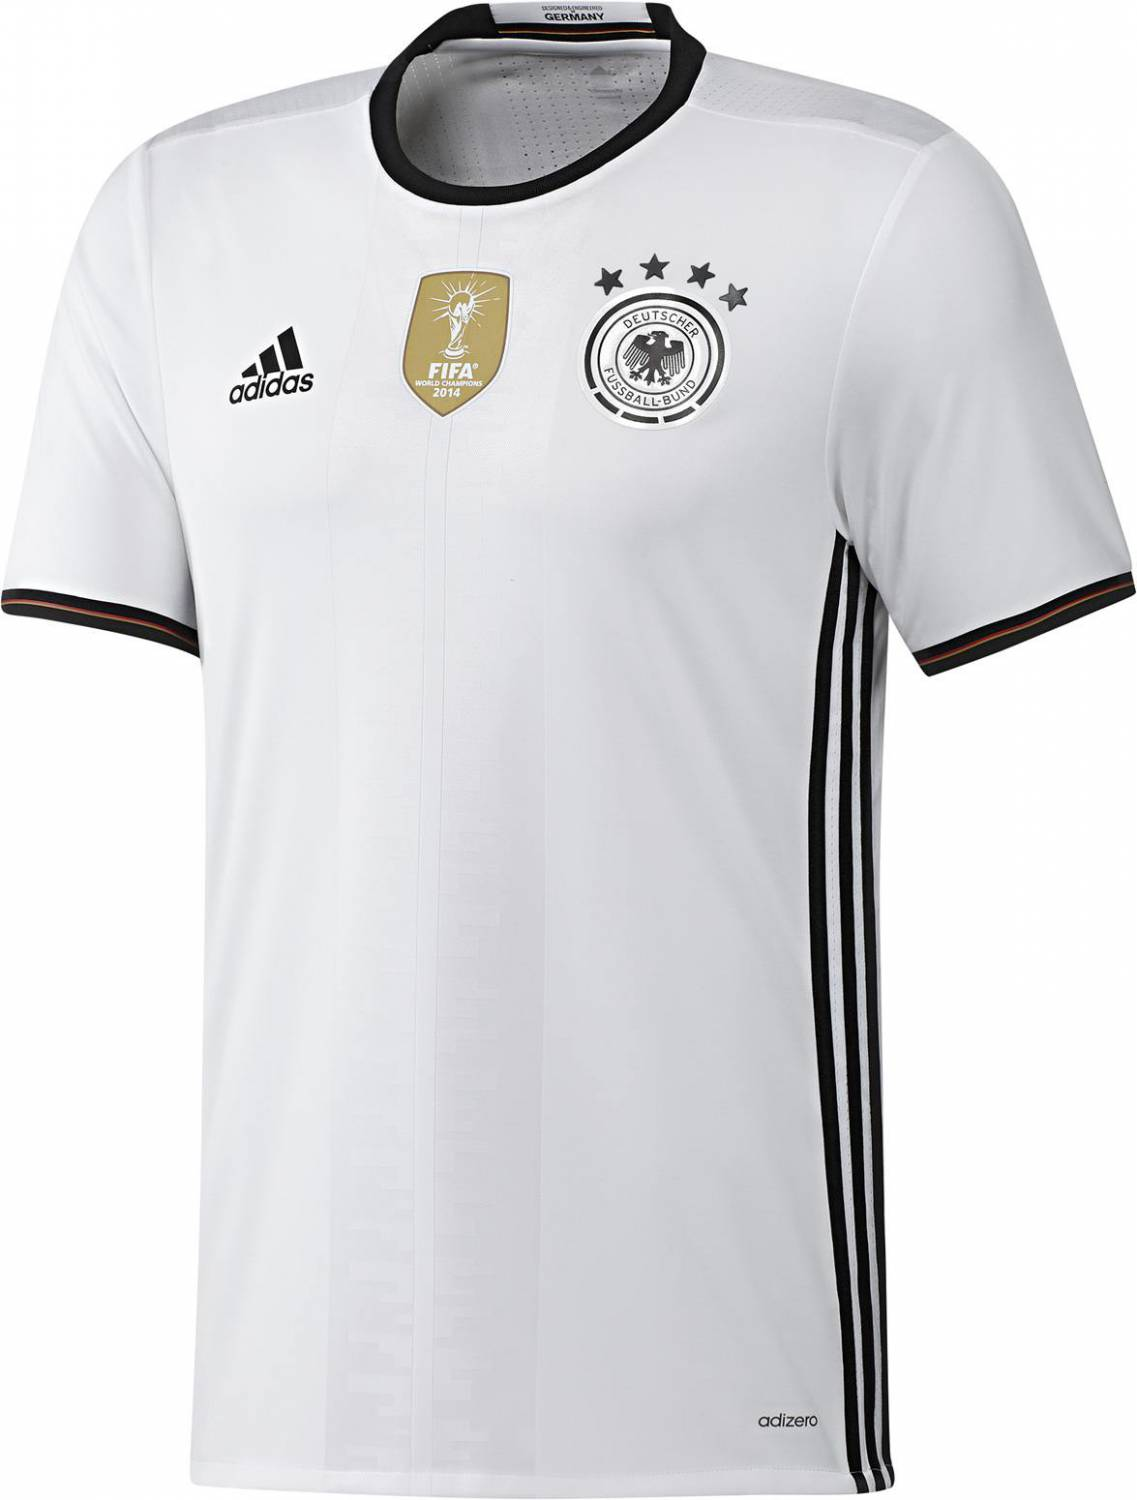 adidas DFB Home Authentic Jersey Trikot (Größe: XL, white/black)